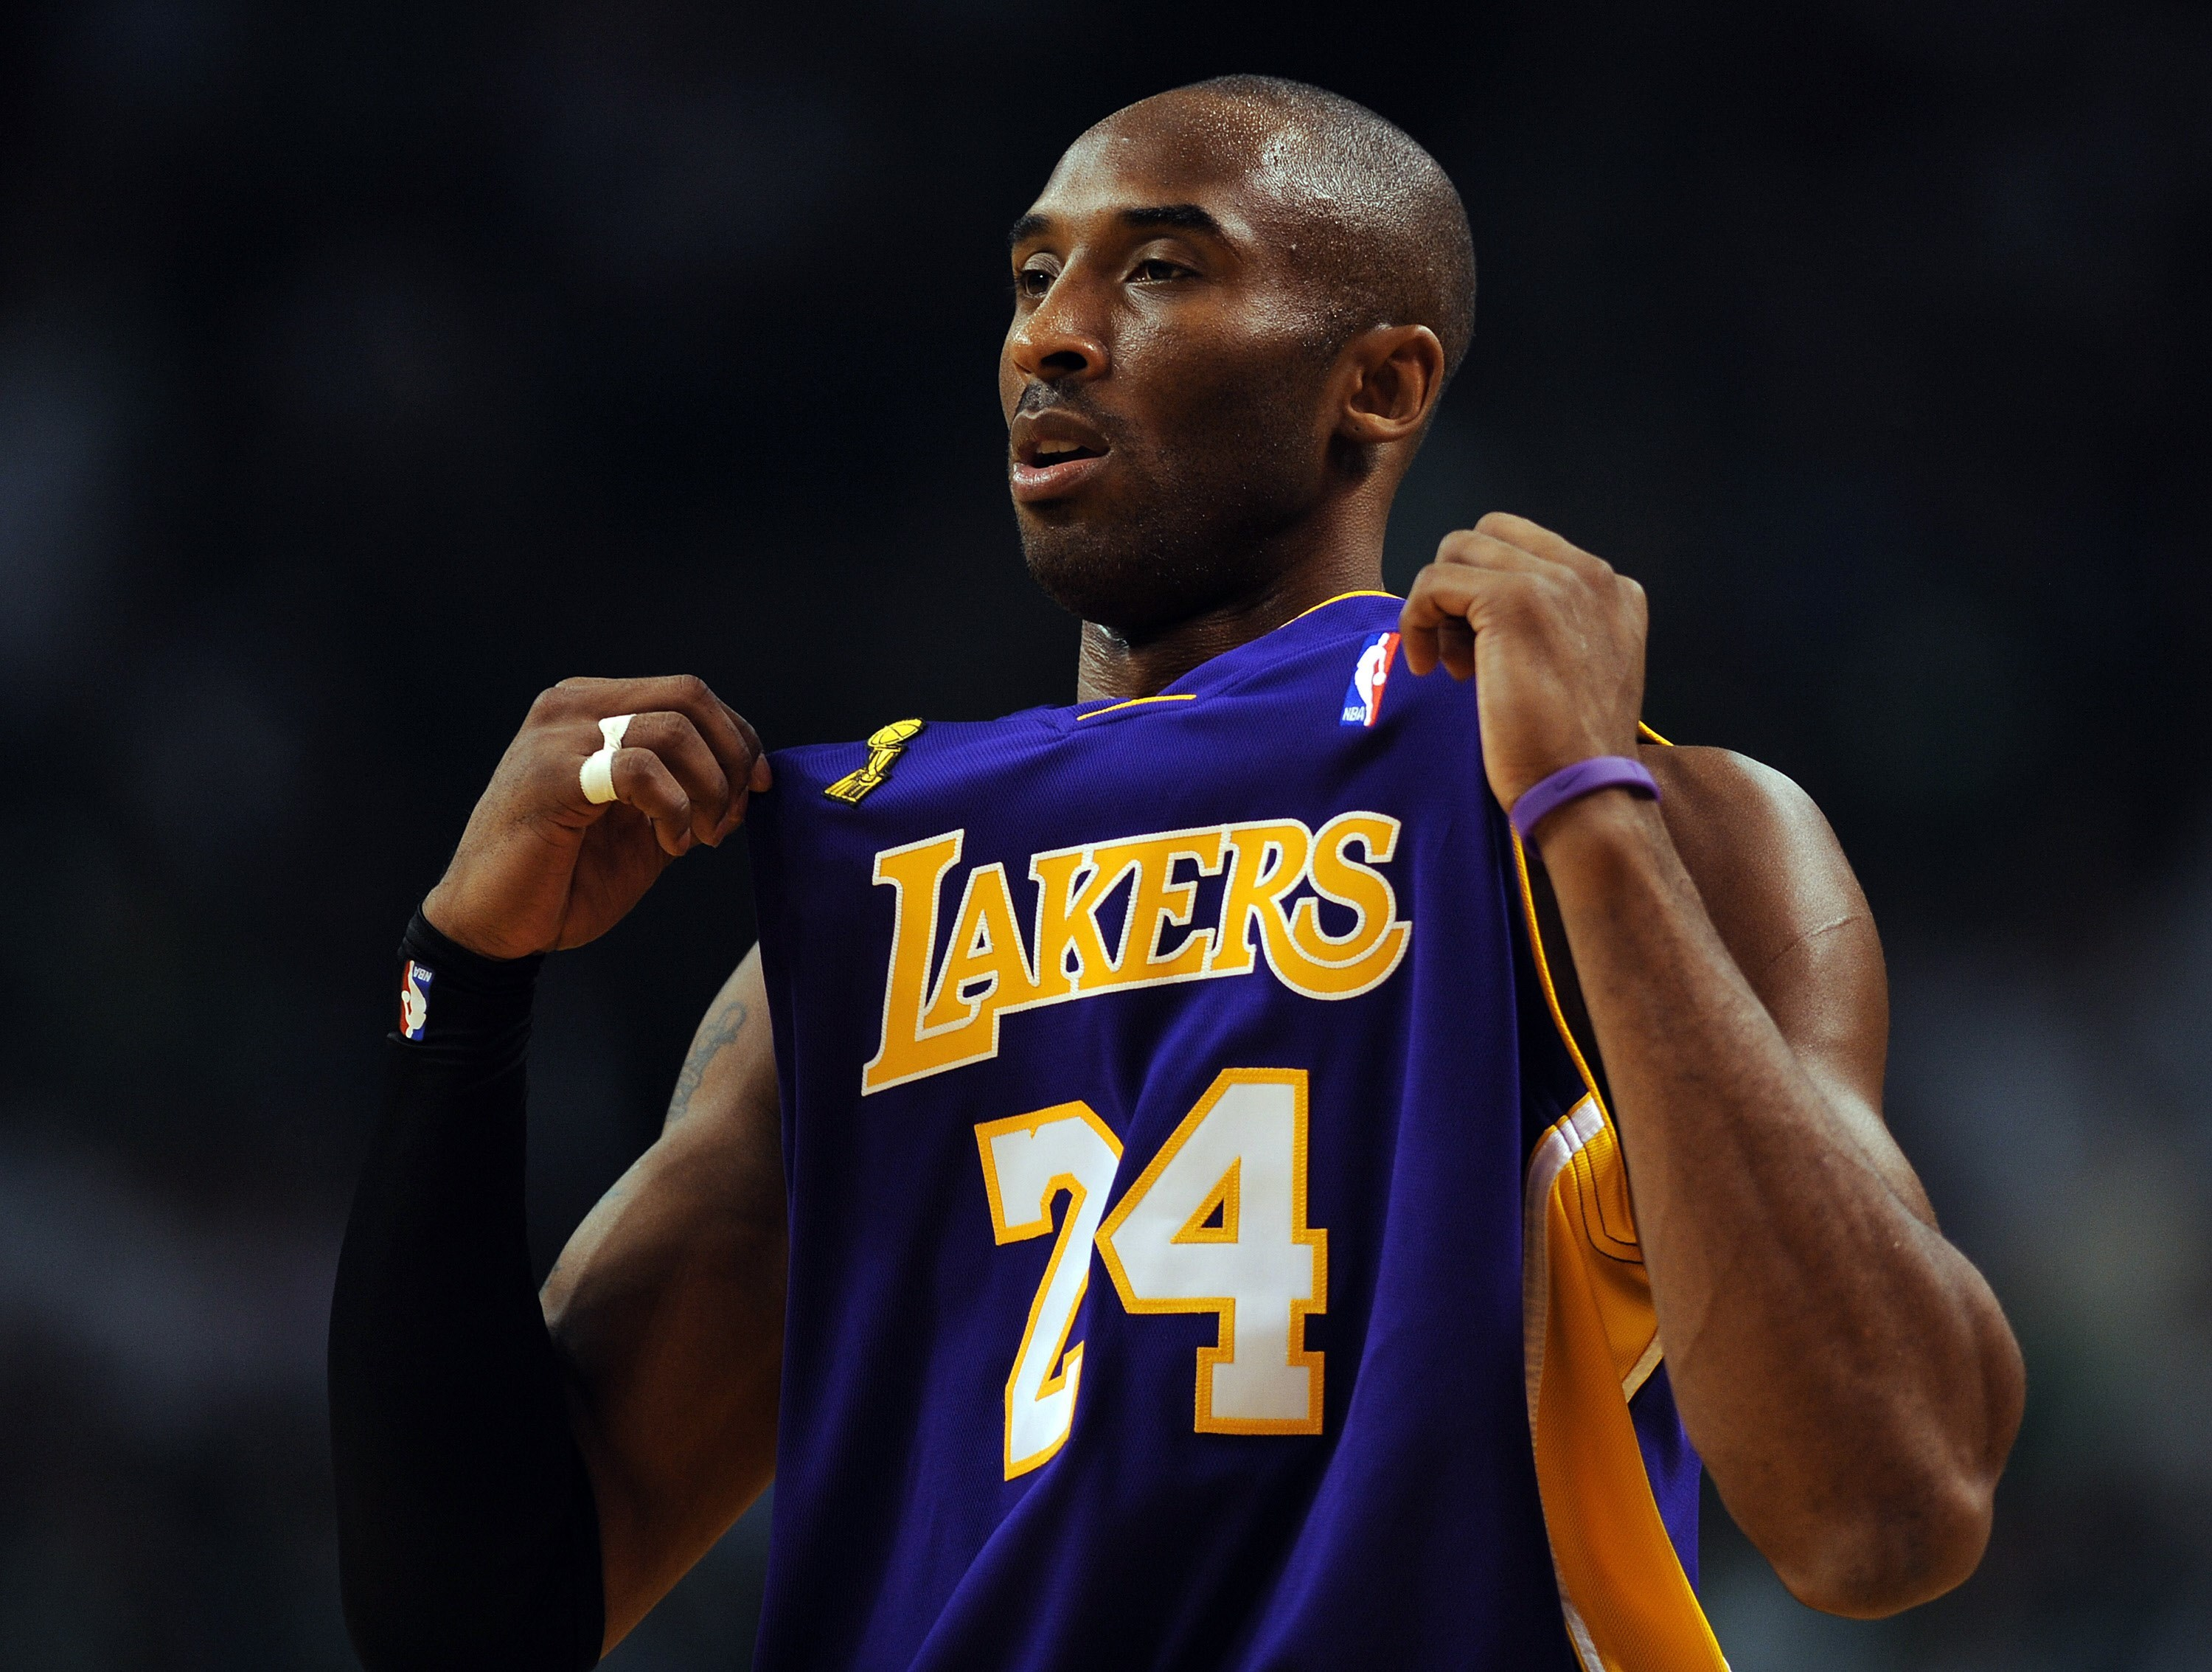 Kobe was considered one of the best basketball players of all time